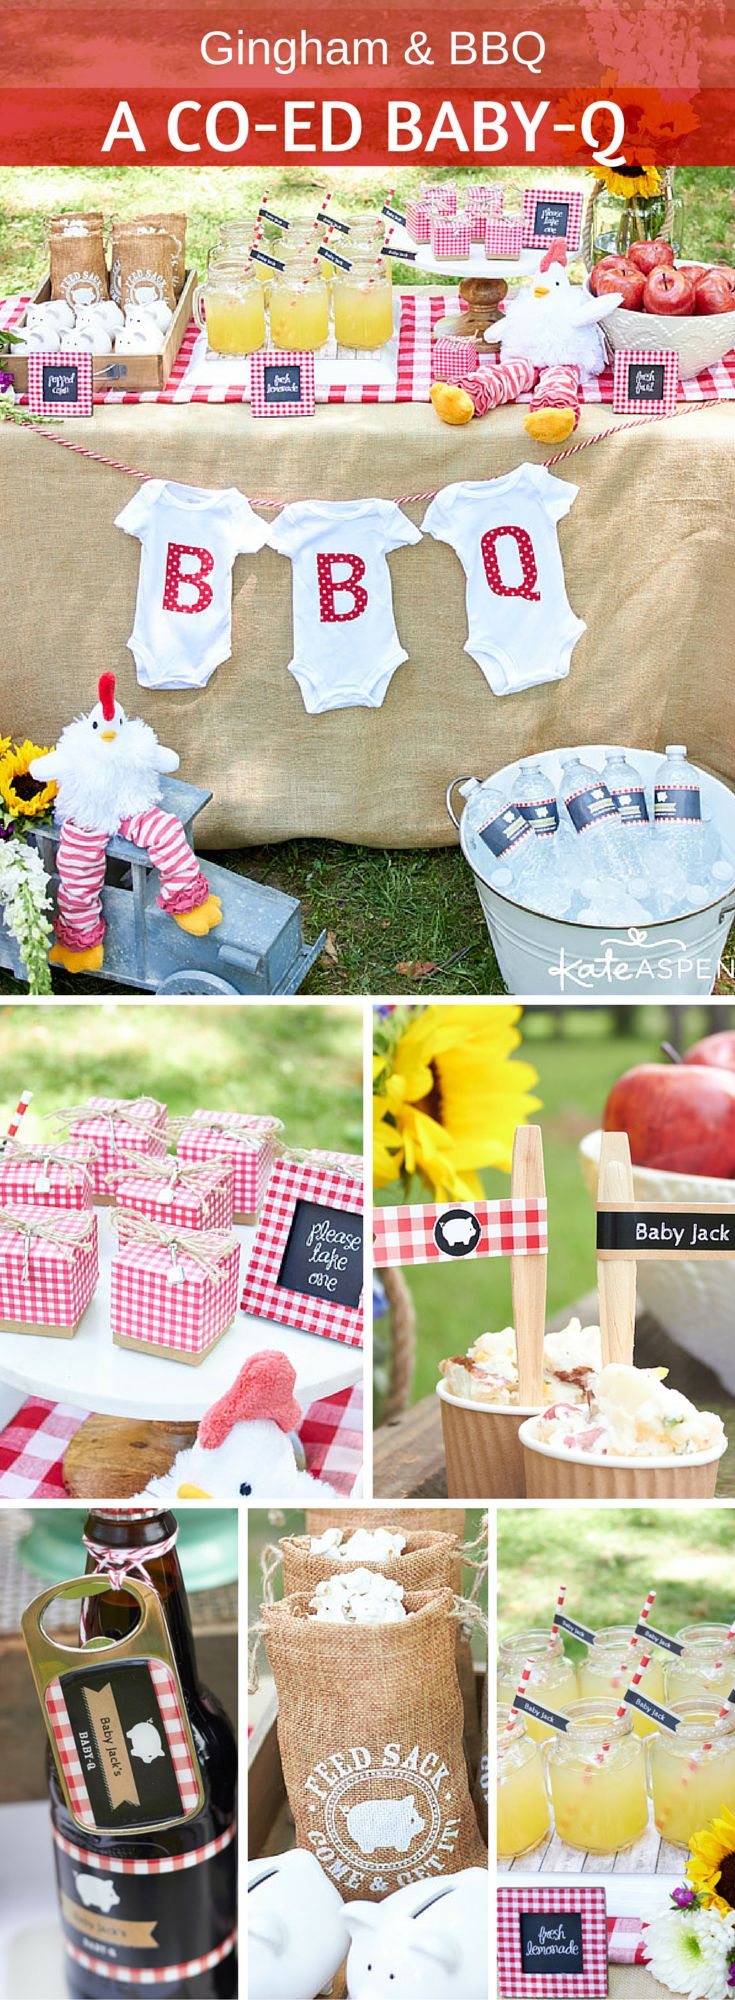 A Baby-Q is an adorable gender-neutral baby shower theme, and it's family friendly, too. From favor boxes to customized bottle openers, here's everything you need to throw a relaxed barbecue-themed baby shower honoring the mommy and daddy-to-be!